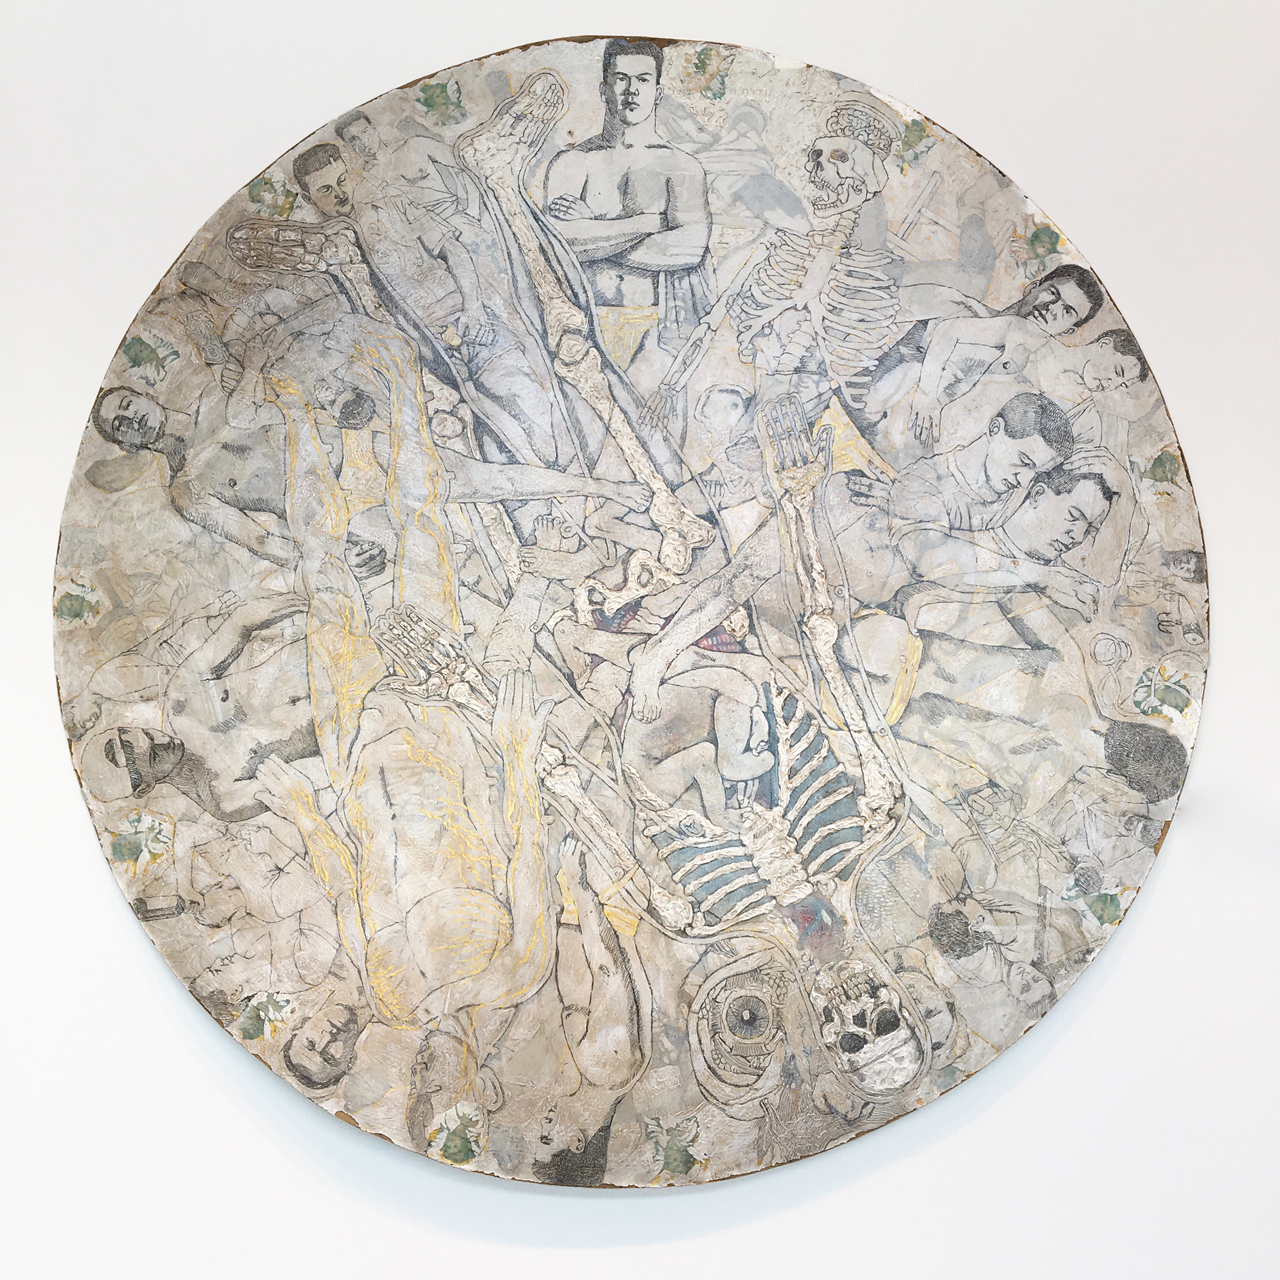 """Michael Meads, """"Wheel of Misfortune"""" (1995) (image courtesy Ogden Museum of Southern Art, New Orleans)"""